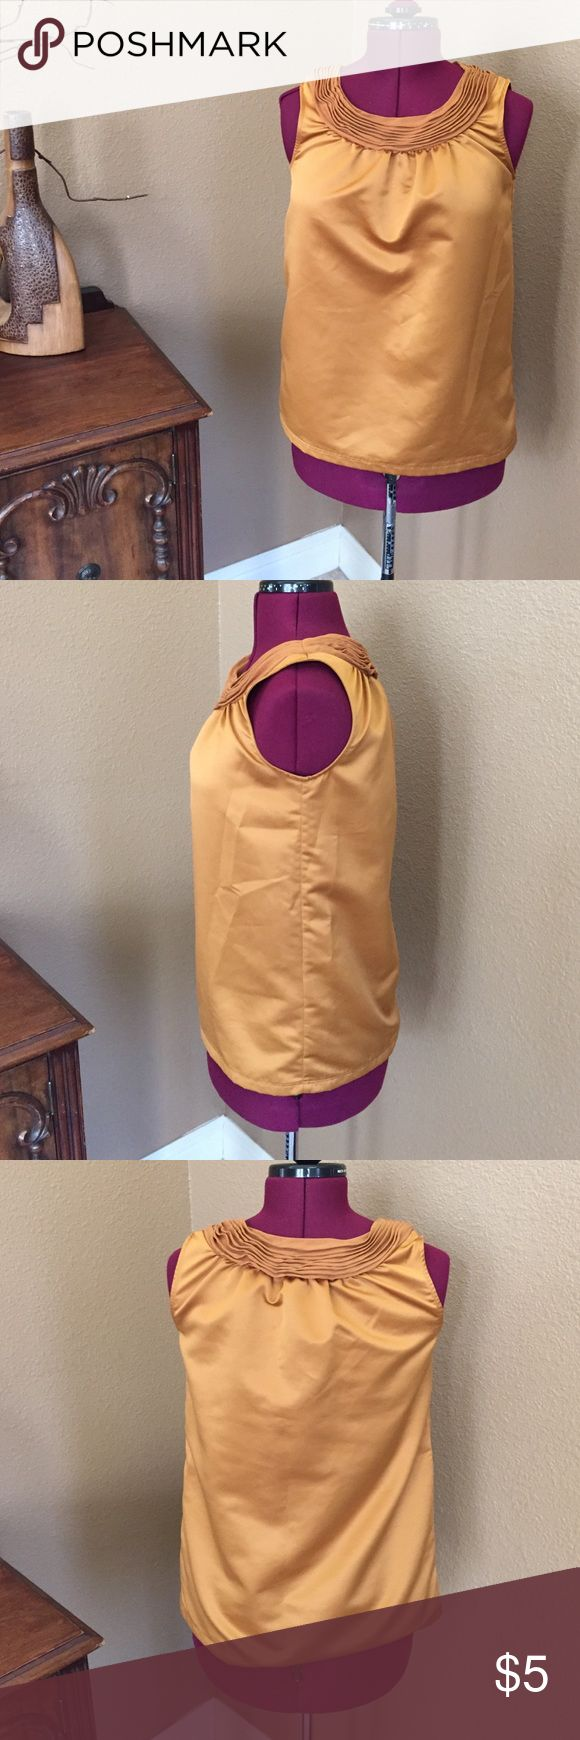 Vera Wang blouse Satin look gold blouse with ruche collar. In used condition. Vera Wang Tops Blouses